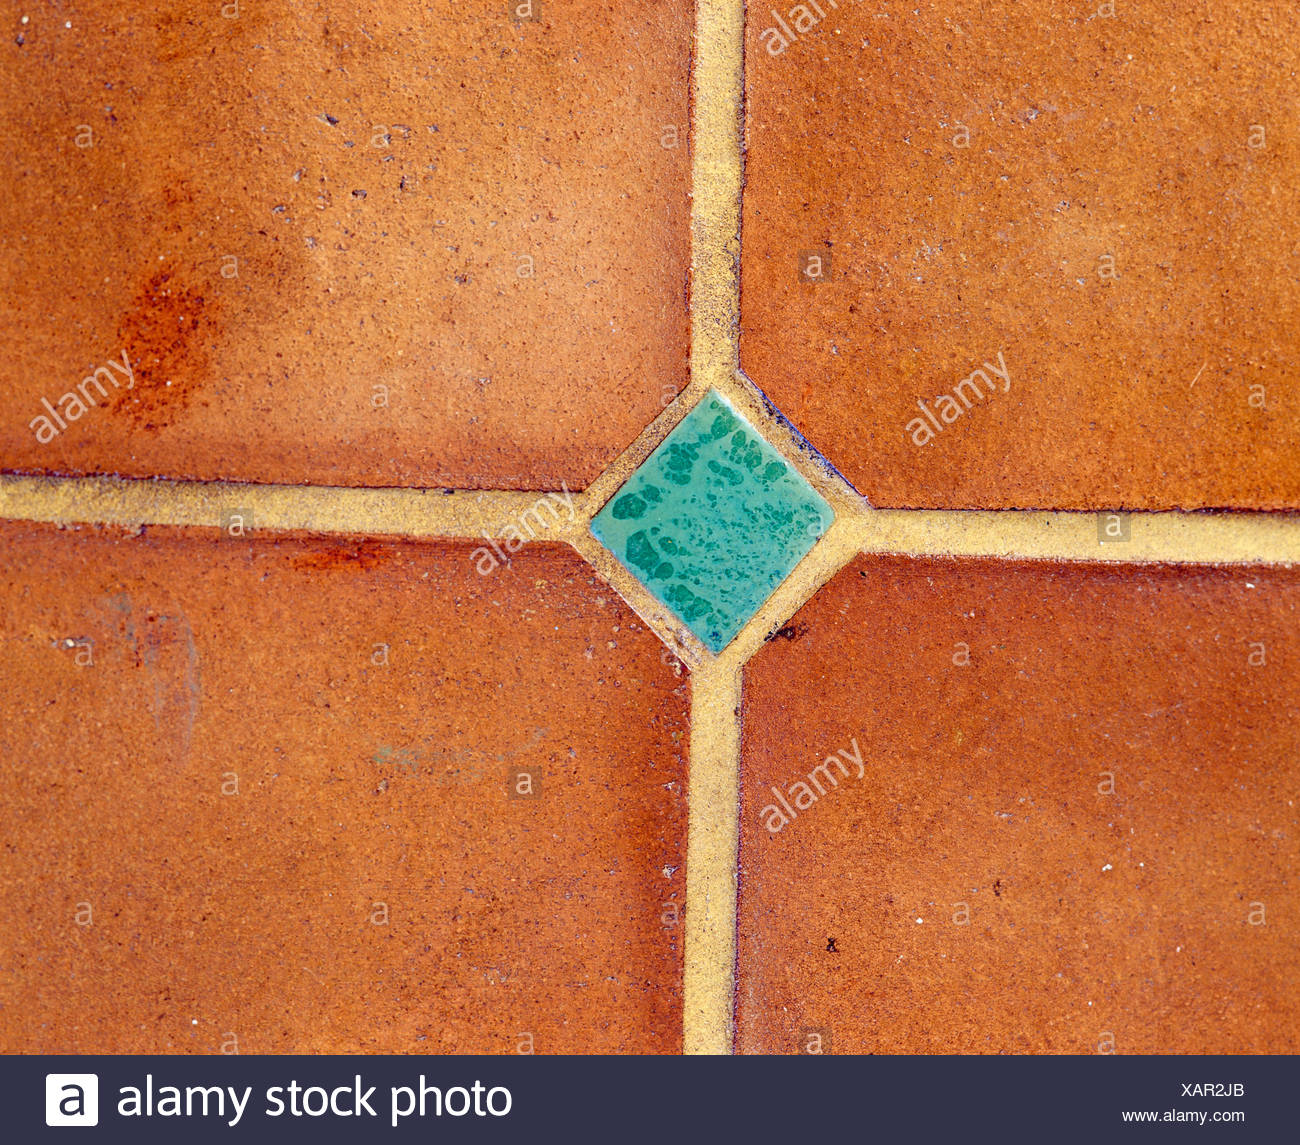 Close-up of terracotta floor tiles with turquoise insert